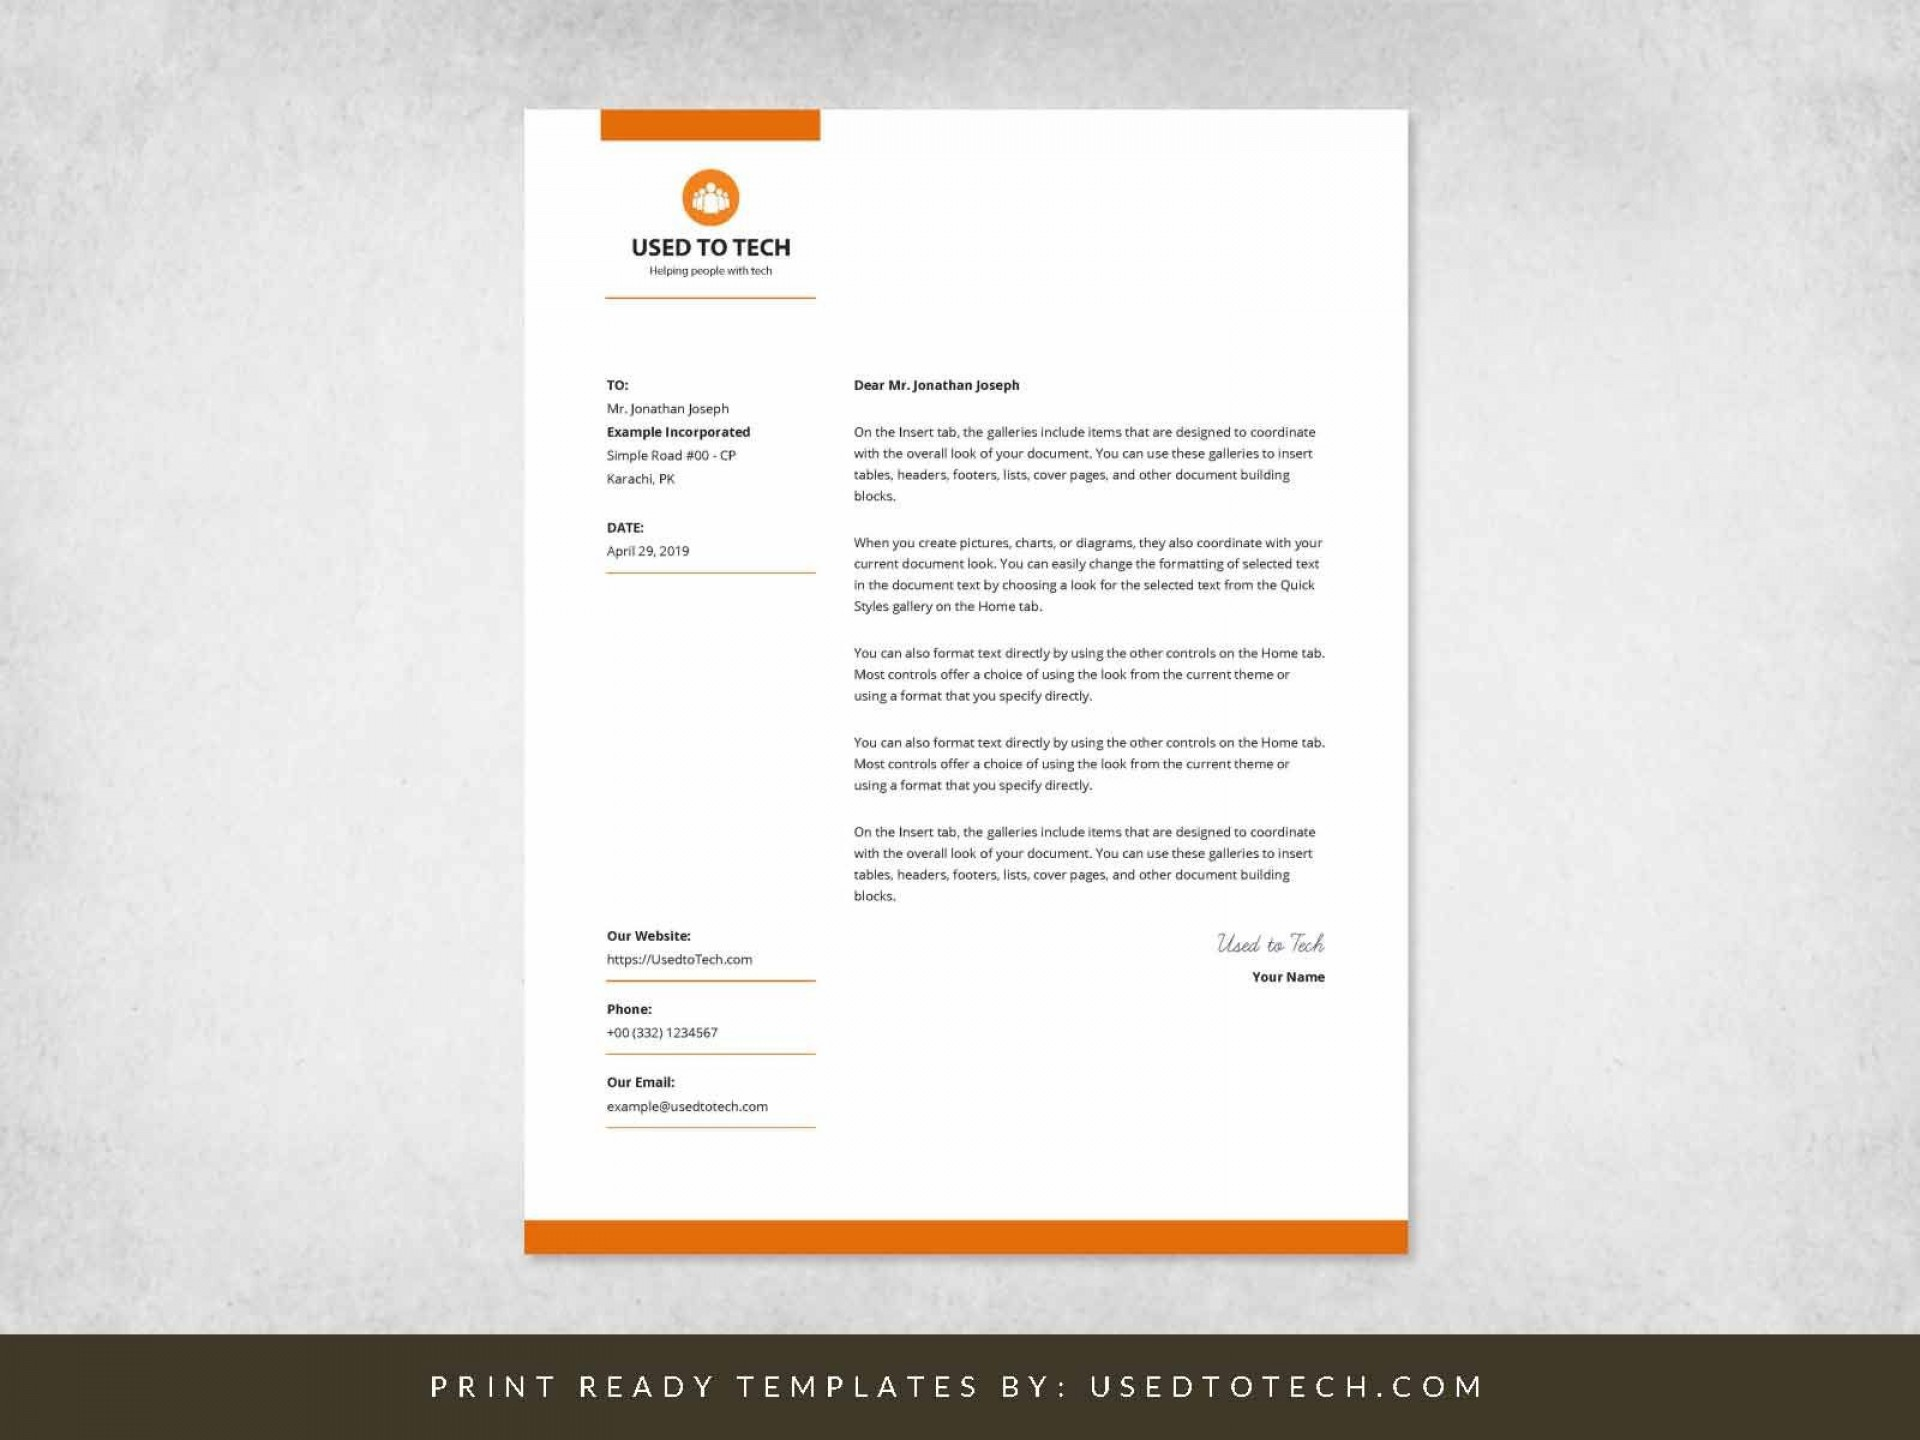 000 Staggering Company Letterhead Format In Word Free Download Image  Sample Template 20201920